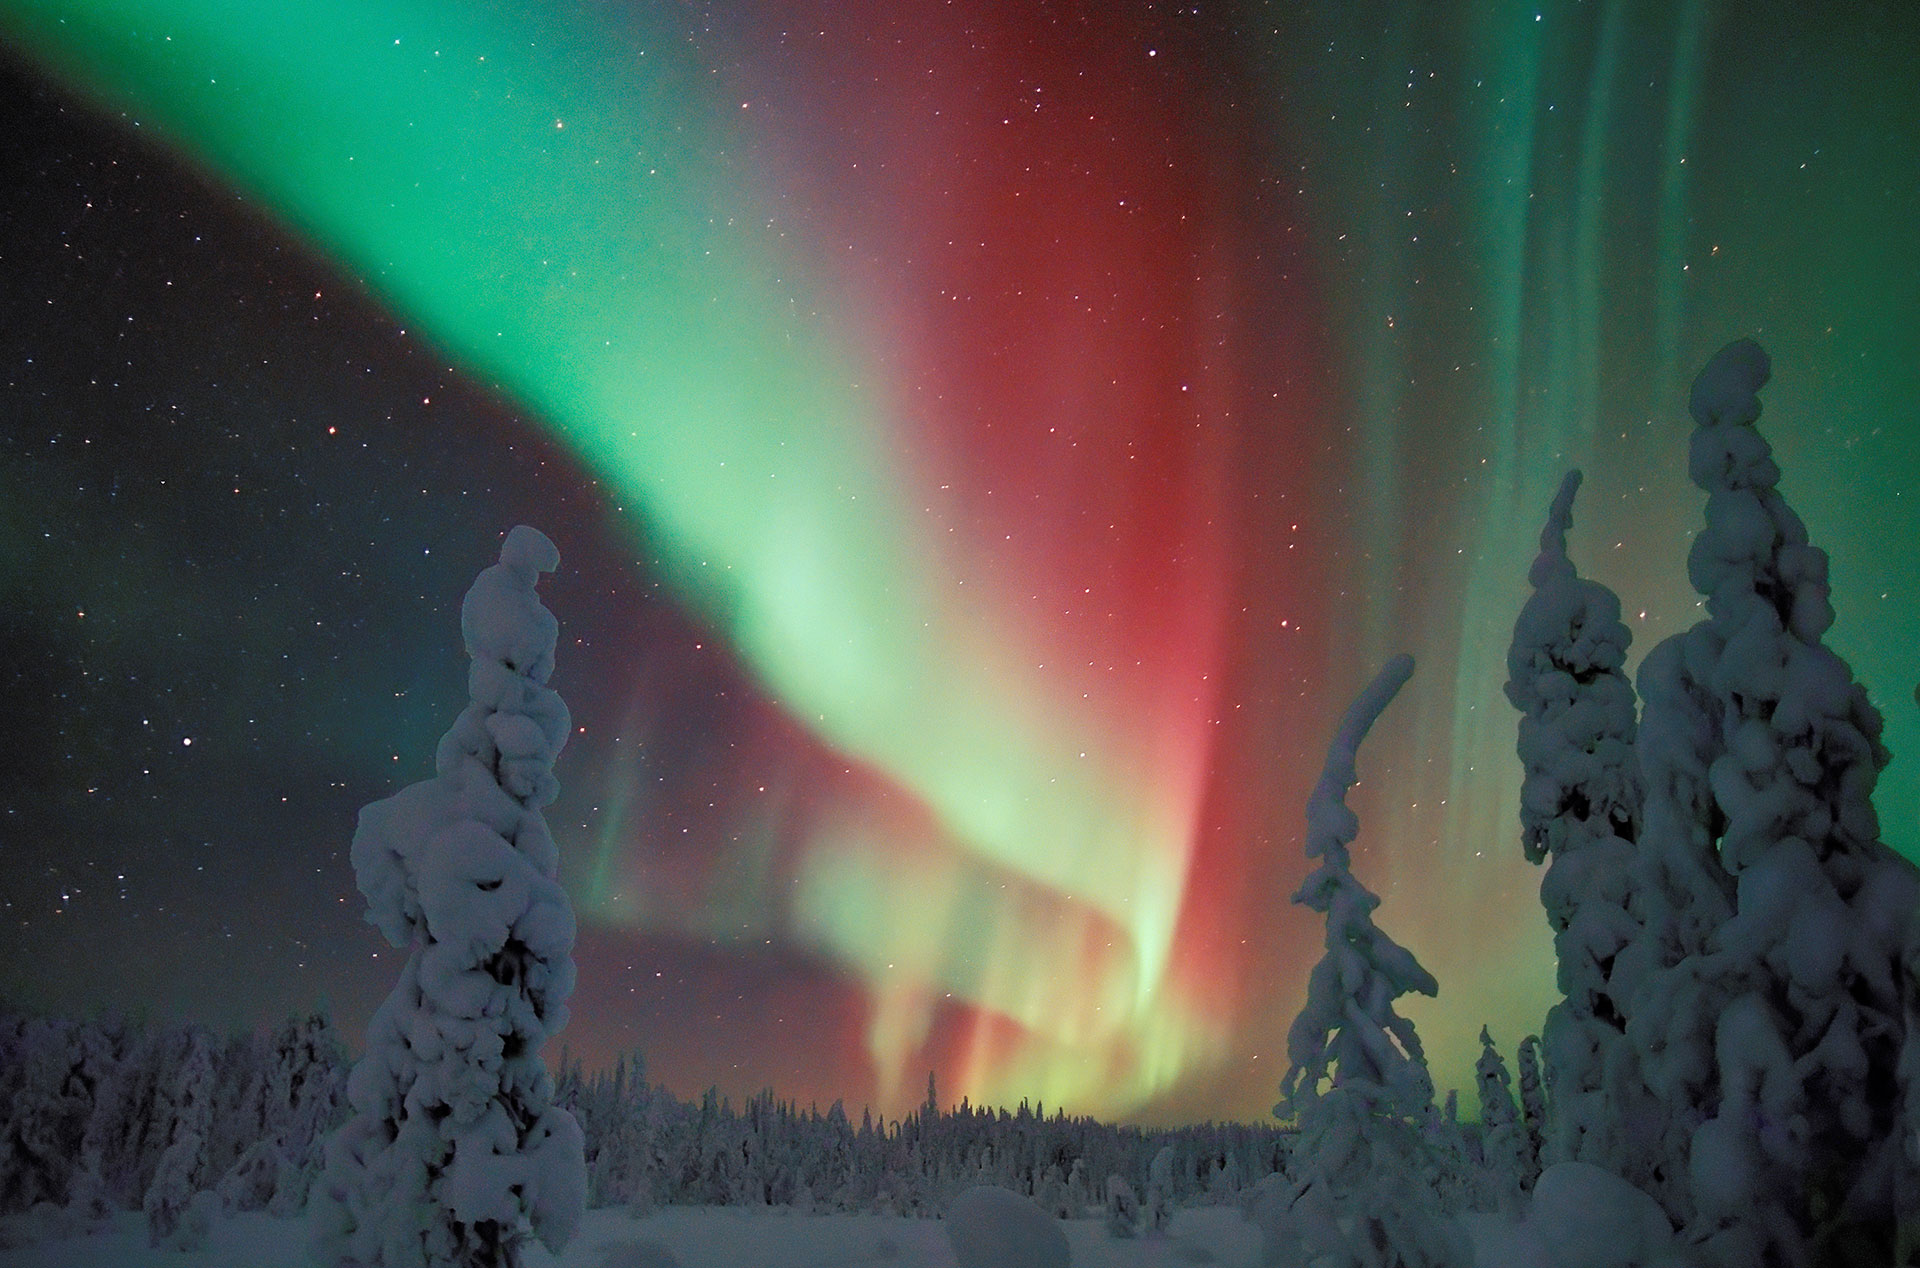 Good ... The Auroras Are Caused By A Fox Running Over The Fells Of Lapland,  Whipping Up Snow With Its Tail And Sending Sparks Up The Northern Sky. Amazing Design